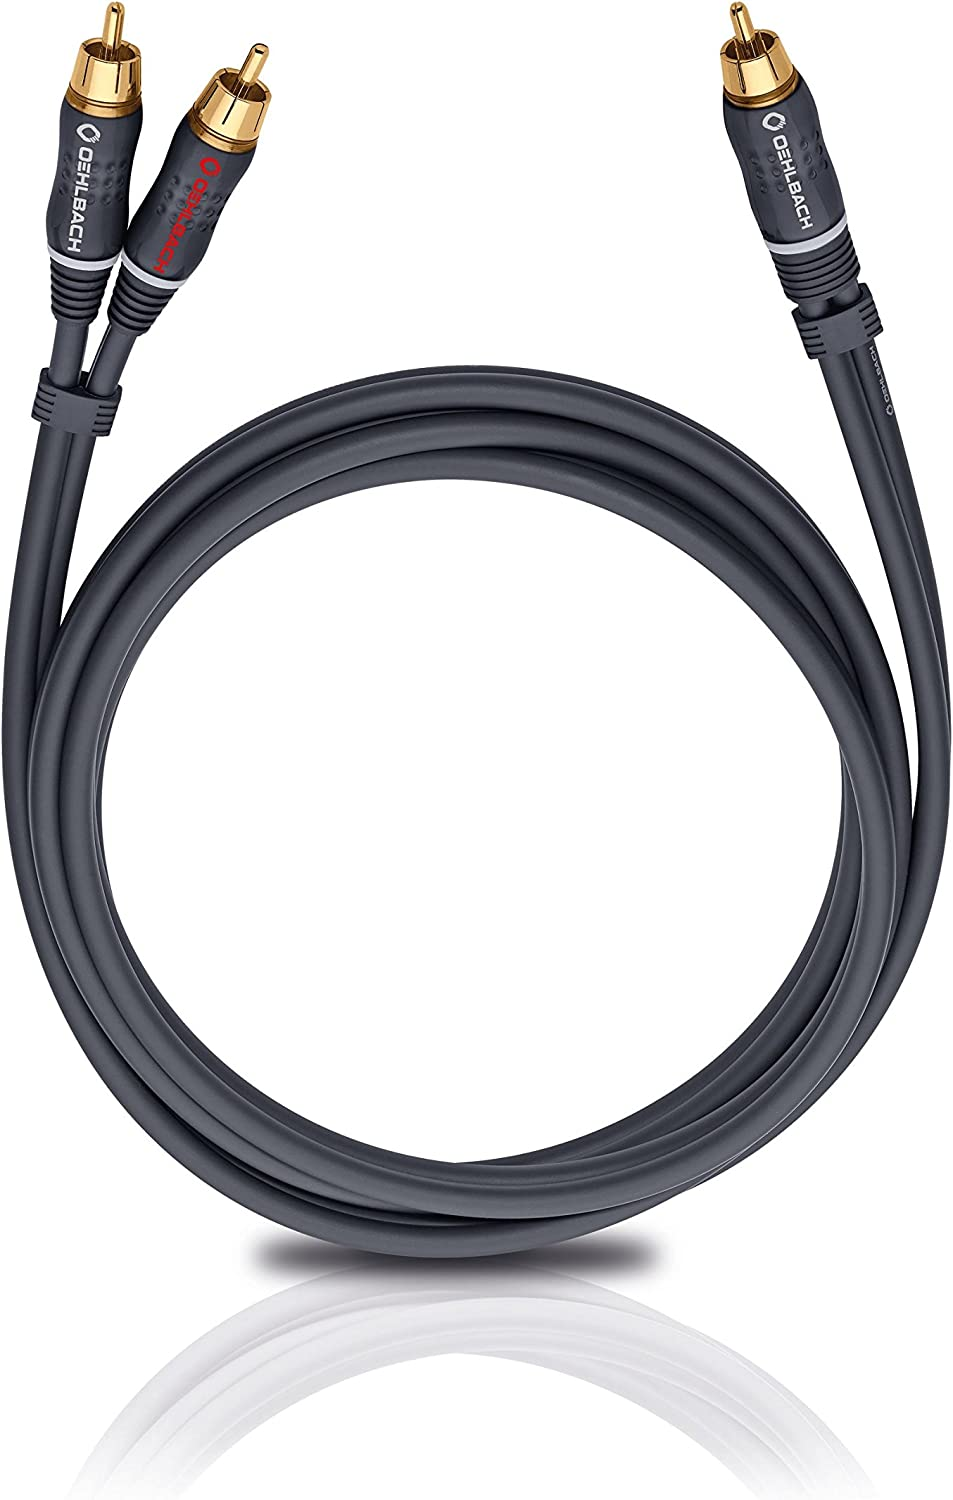 Antracita Oehlbach Booom! Cable para subwoofer de 8 m